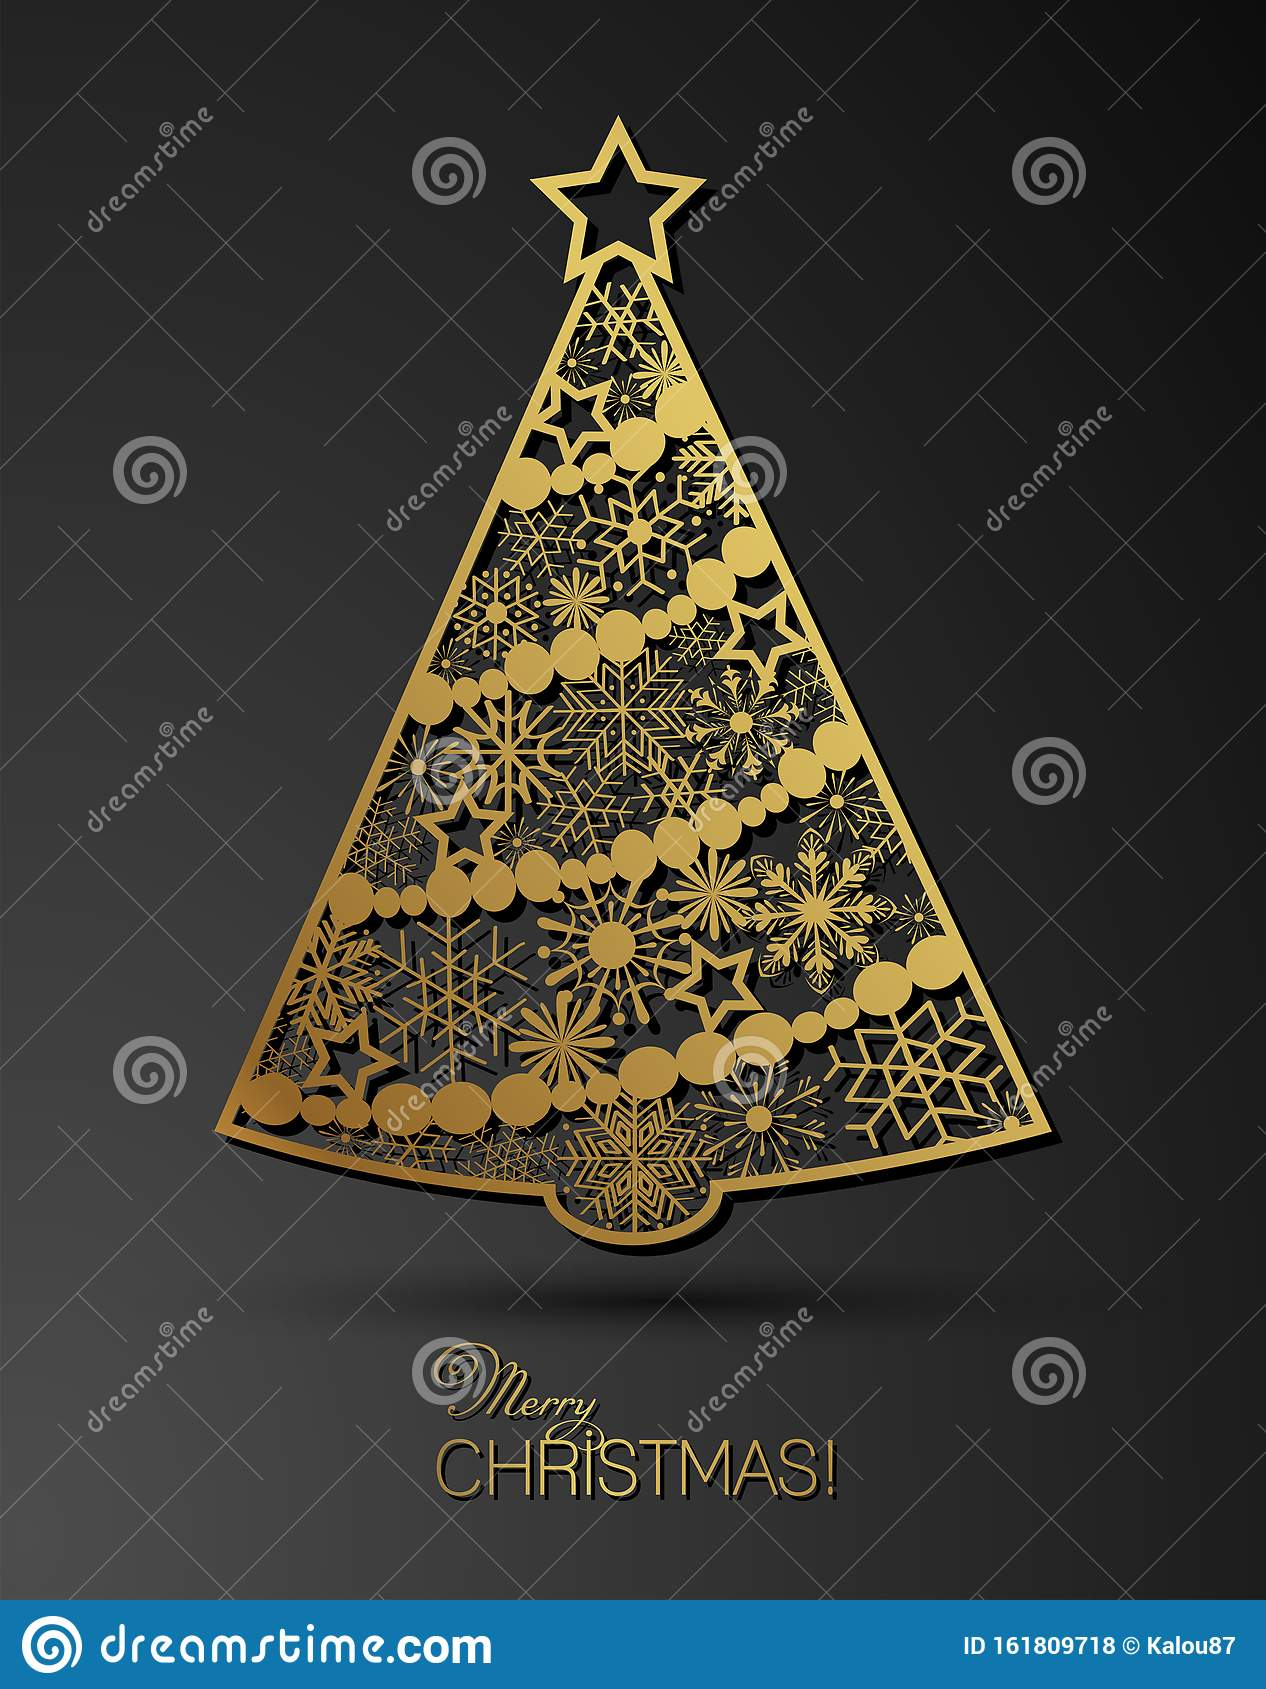 Stylized Golden Christmas Tree Decoration Made From Swirl ...